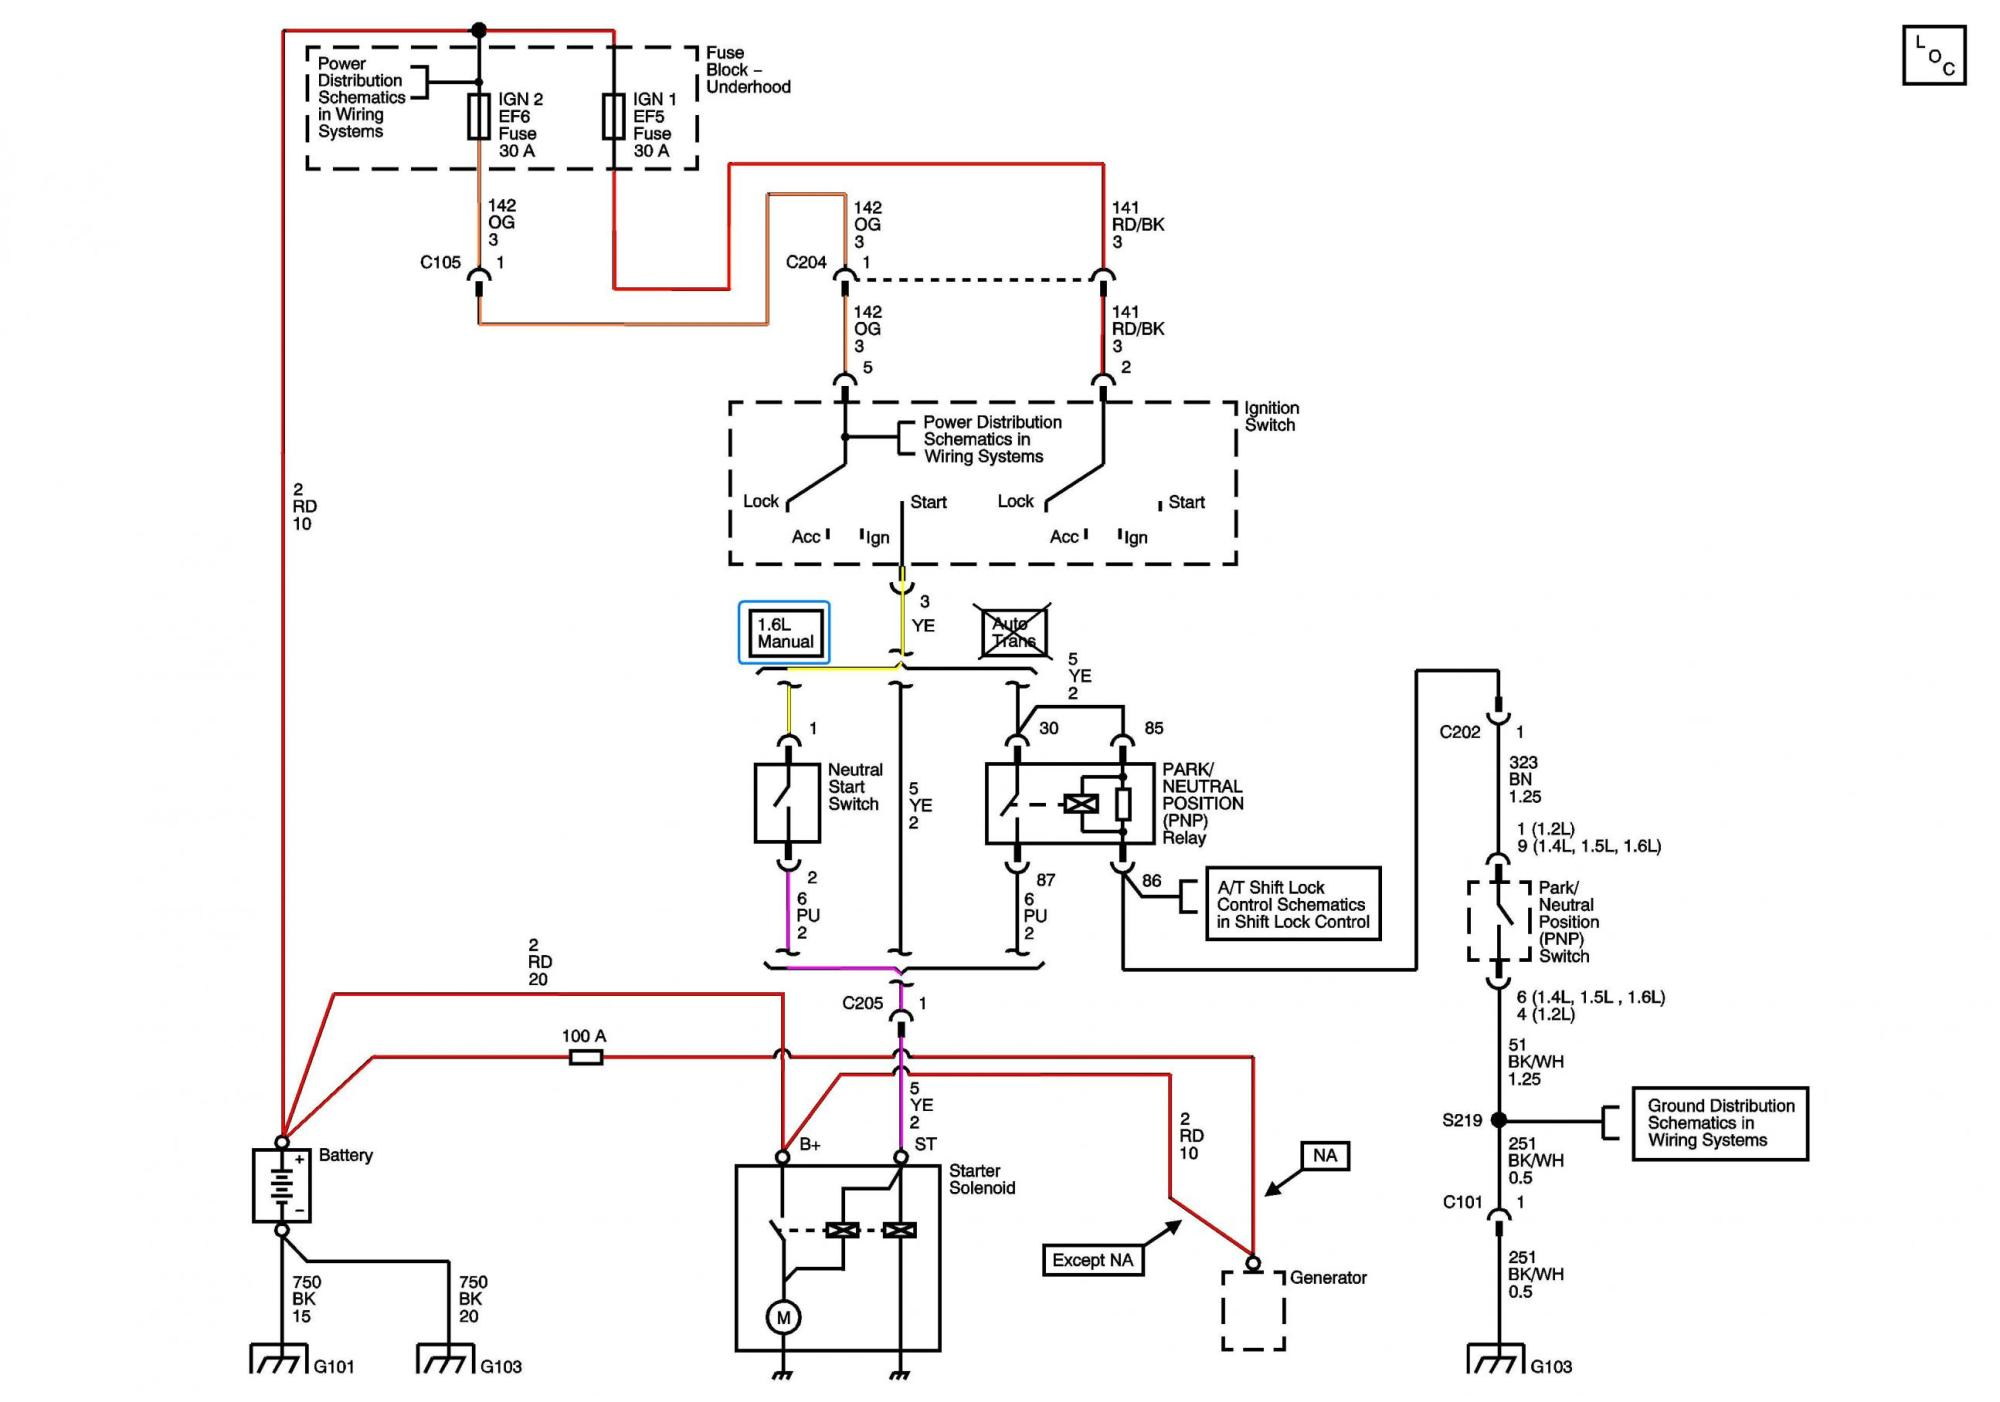 hight resolution of wiring diagram for 2001 chevy silverado on 2007 chevy aveo 2007 chevy aveo ignition wiring diagram 2007 chevy aveo wiring problems